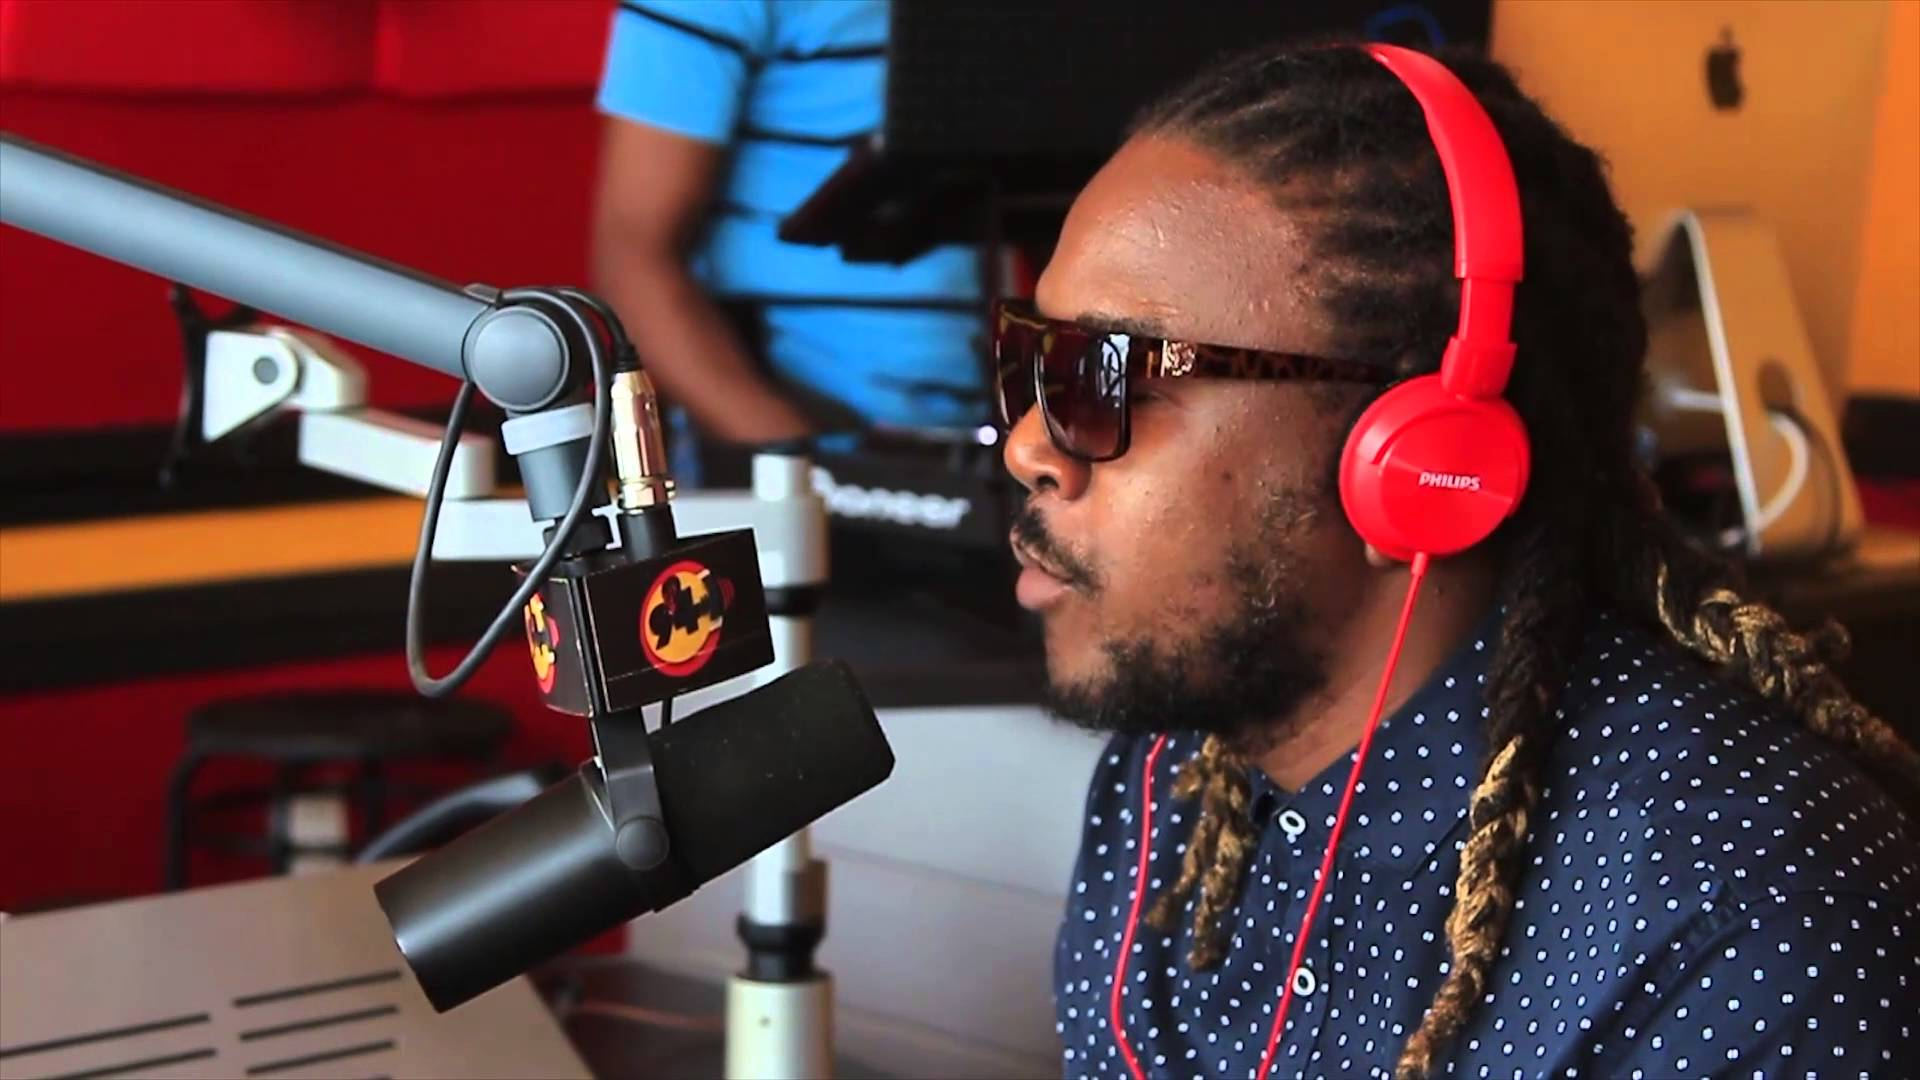 Interview with Bay C @ 94.1 in Guyana [12/26/2015]